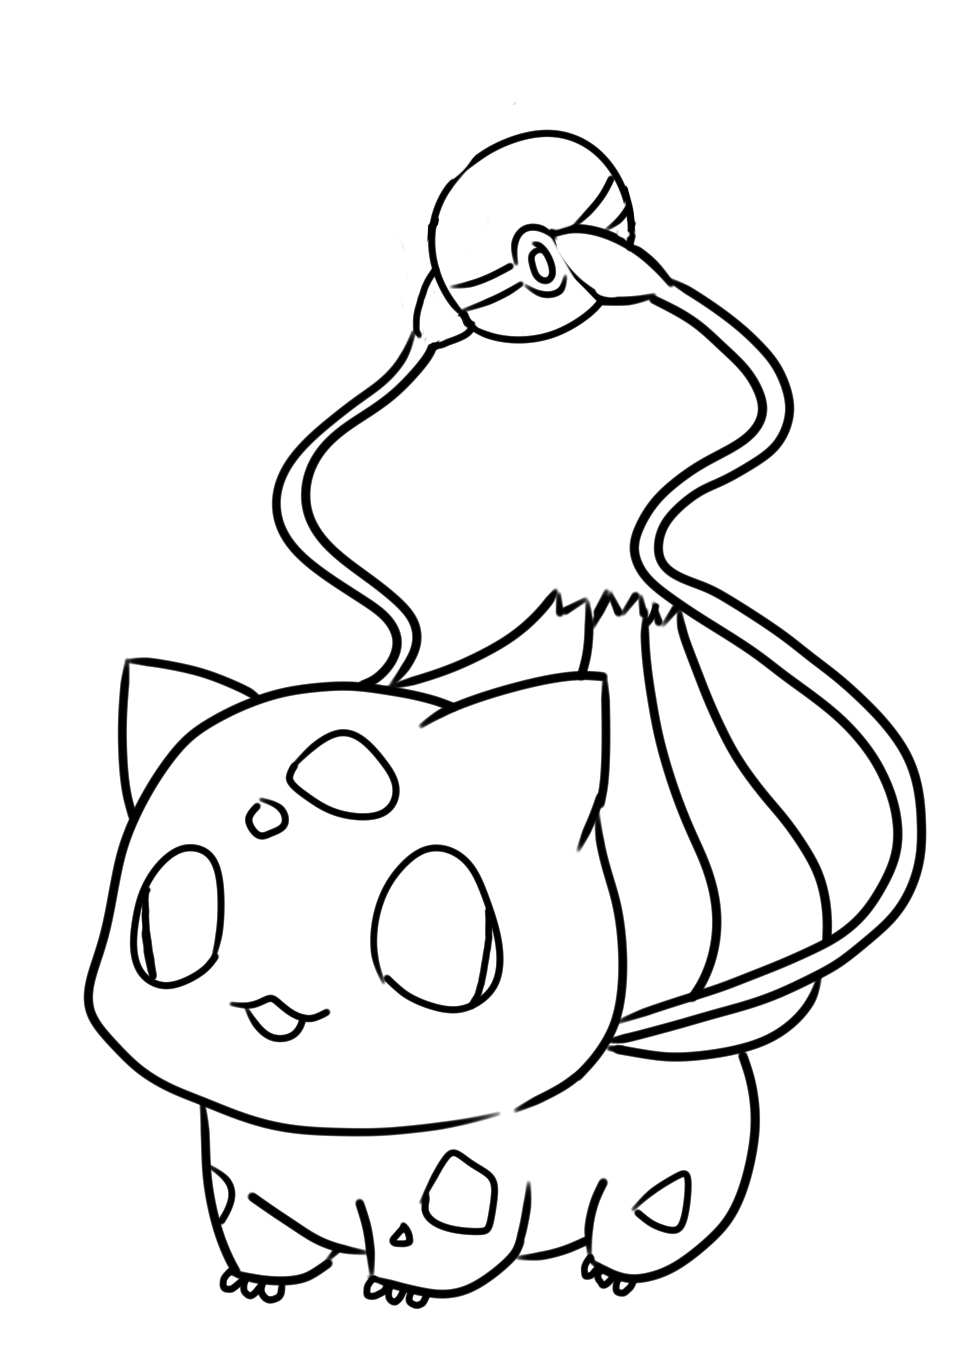 Bulbasaur Coloring Pages - Free Pokemon Coloring Pages